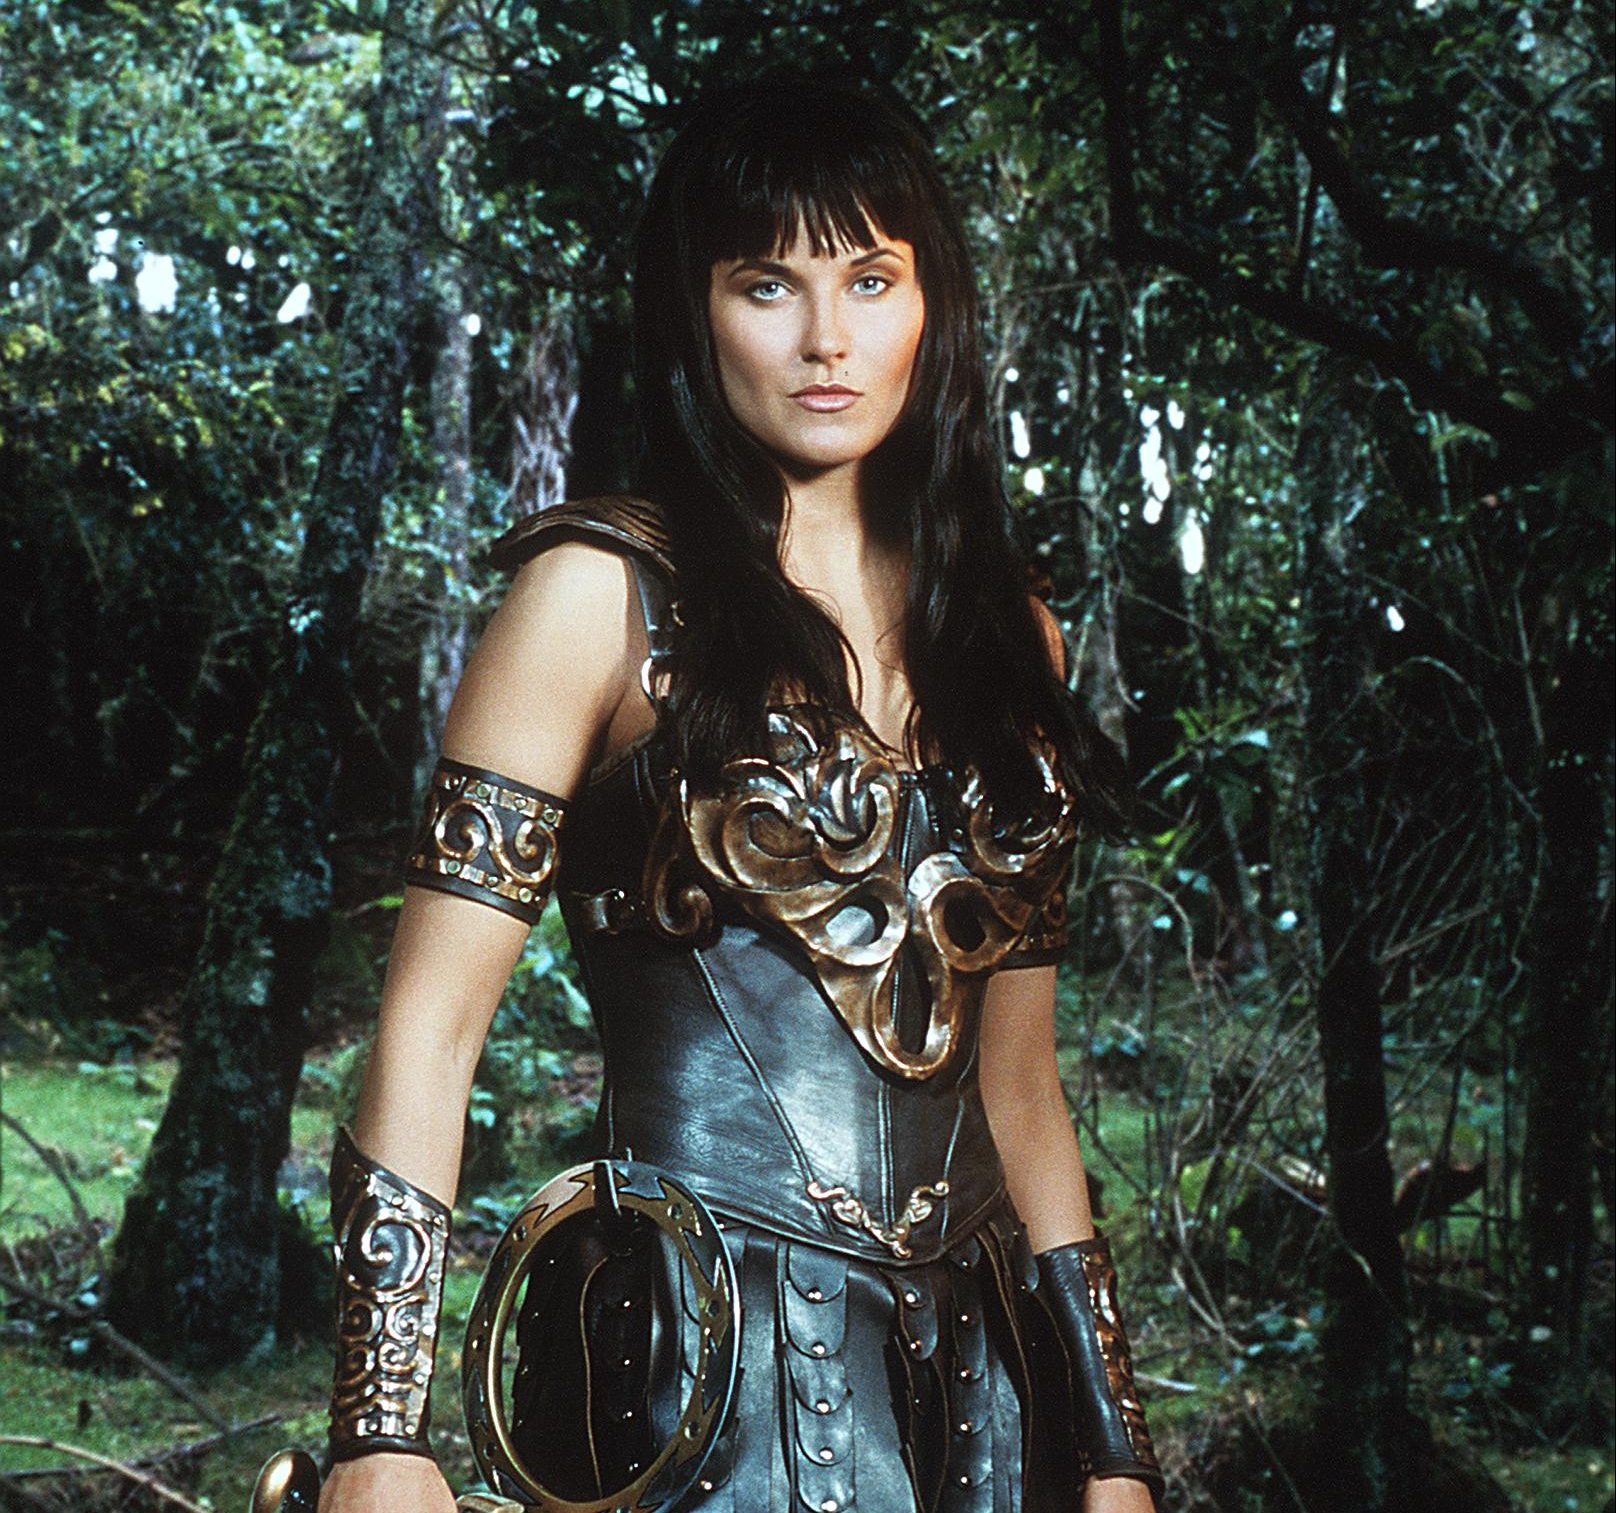 xena e1617004702628 20 Things You Never Knew About Xena: Warrior Princess